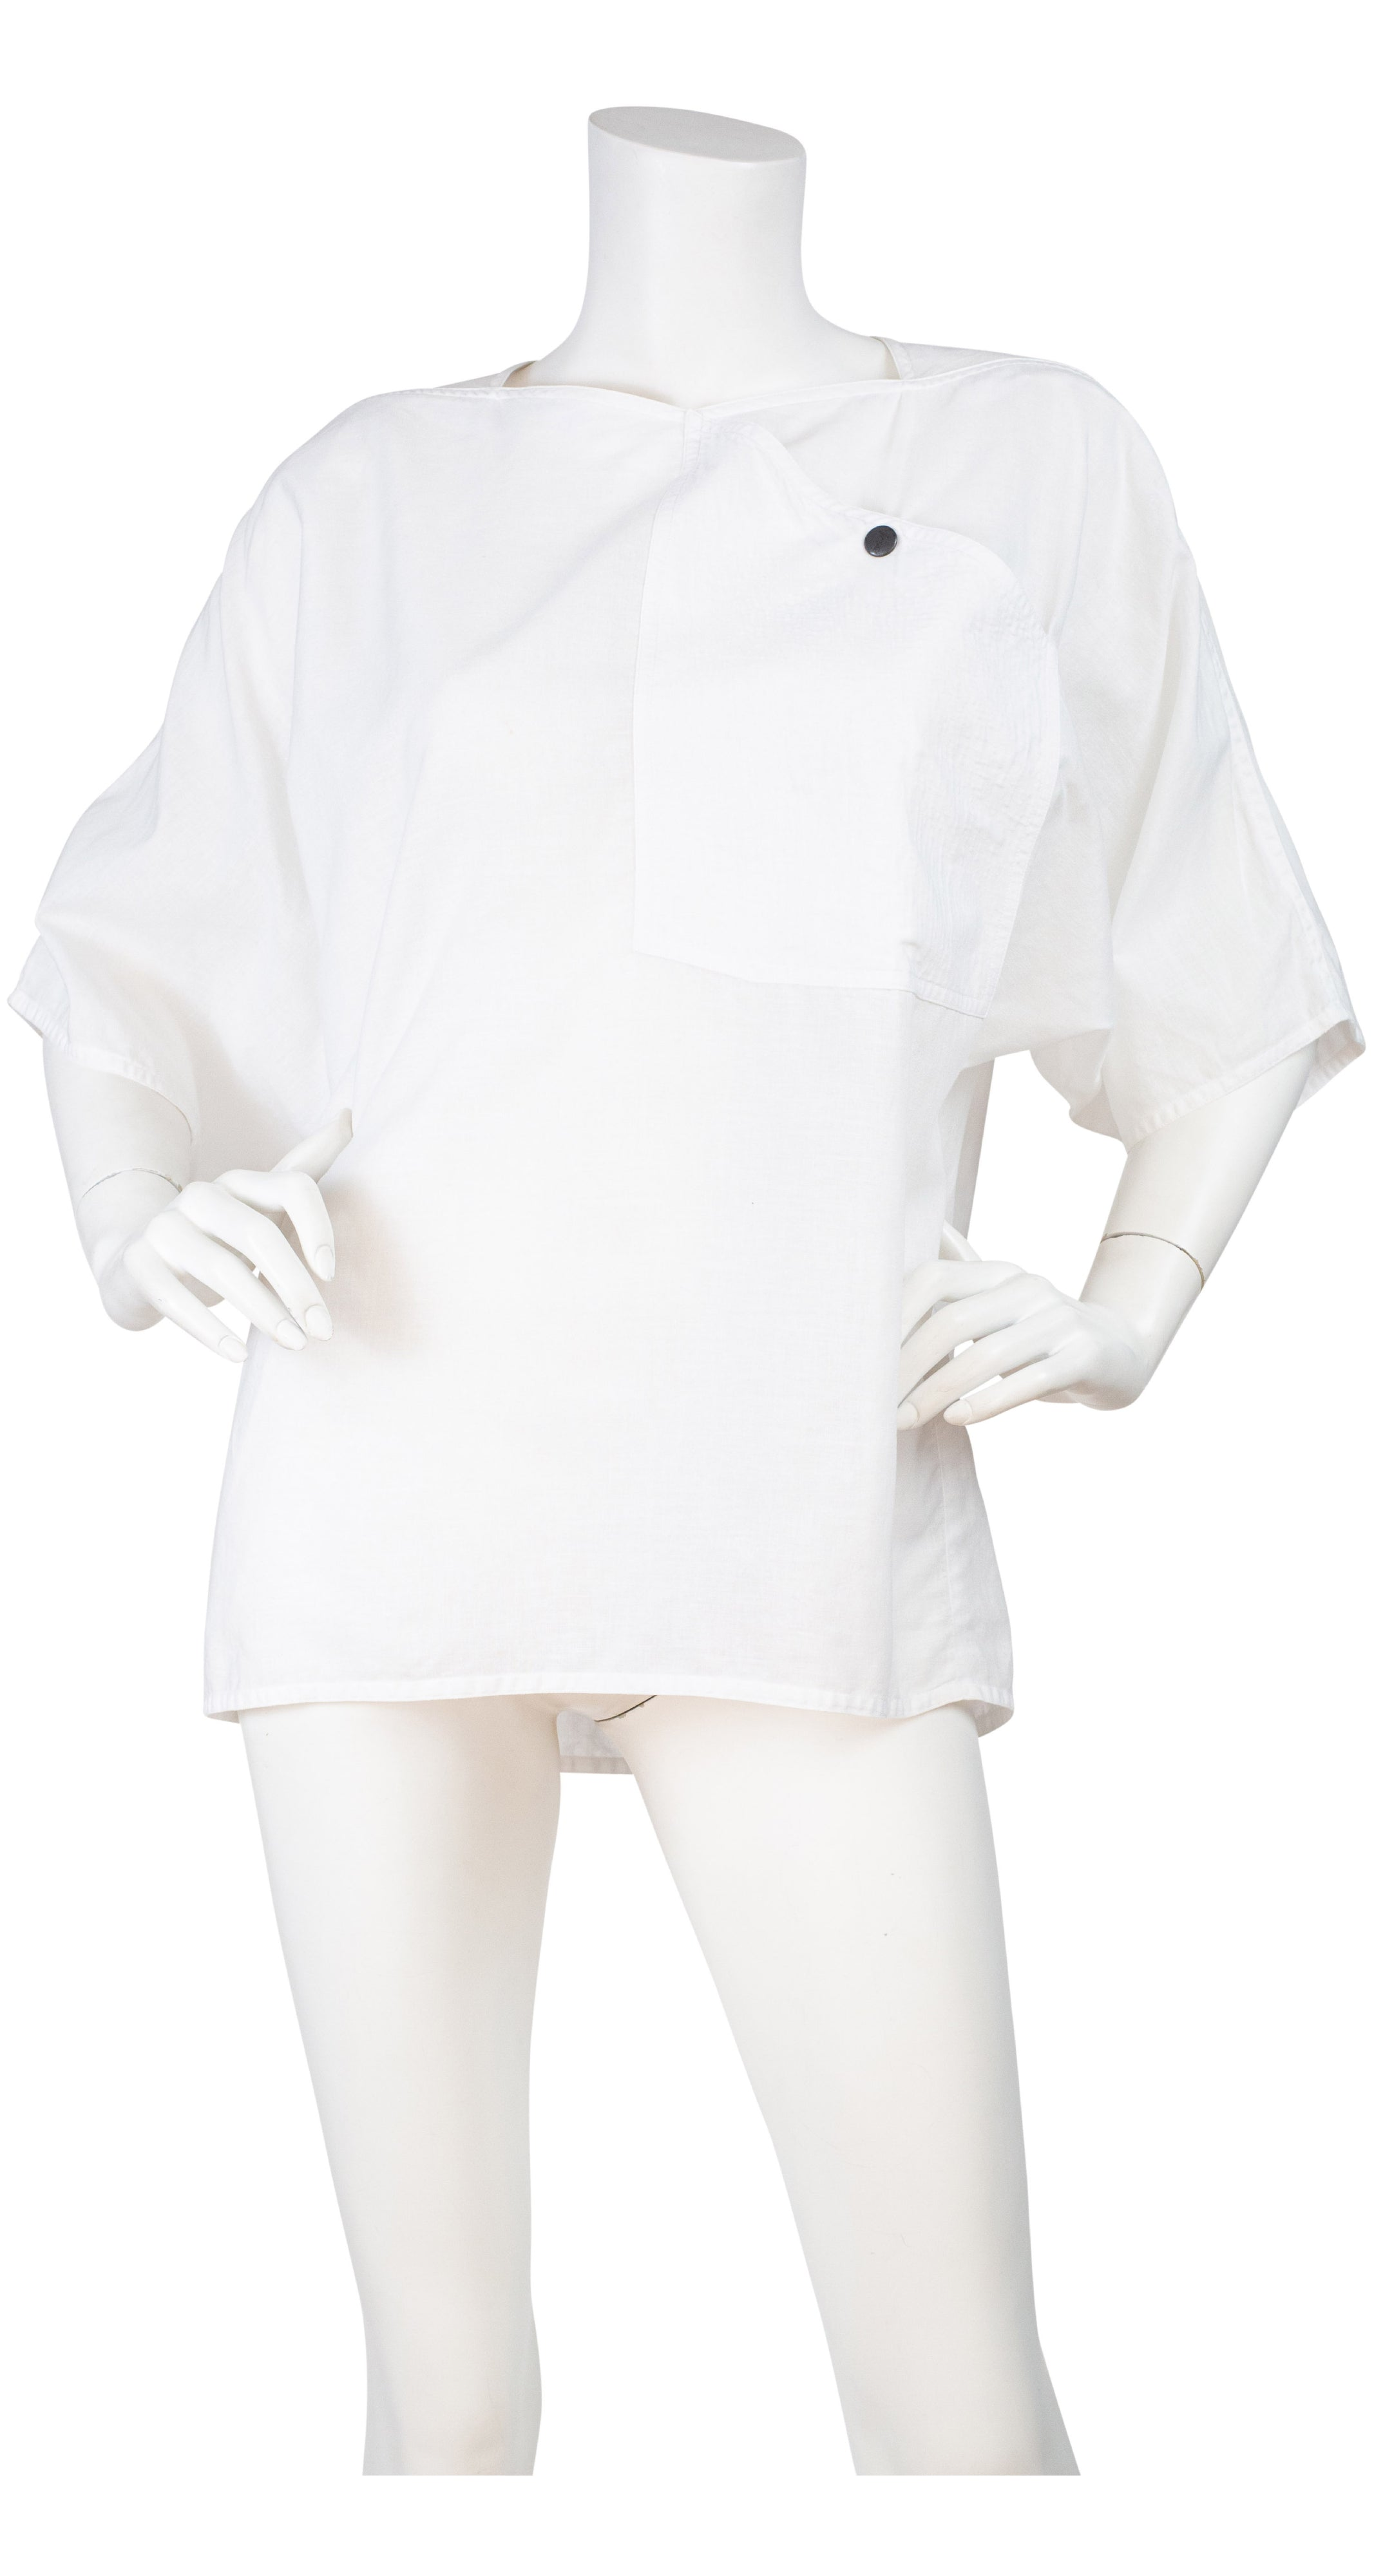 1980s White Linen & Cotton Box Cut Short Sleeve Top